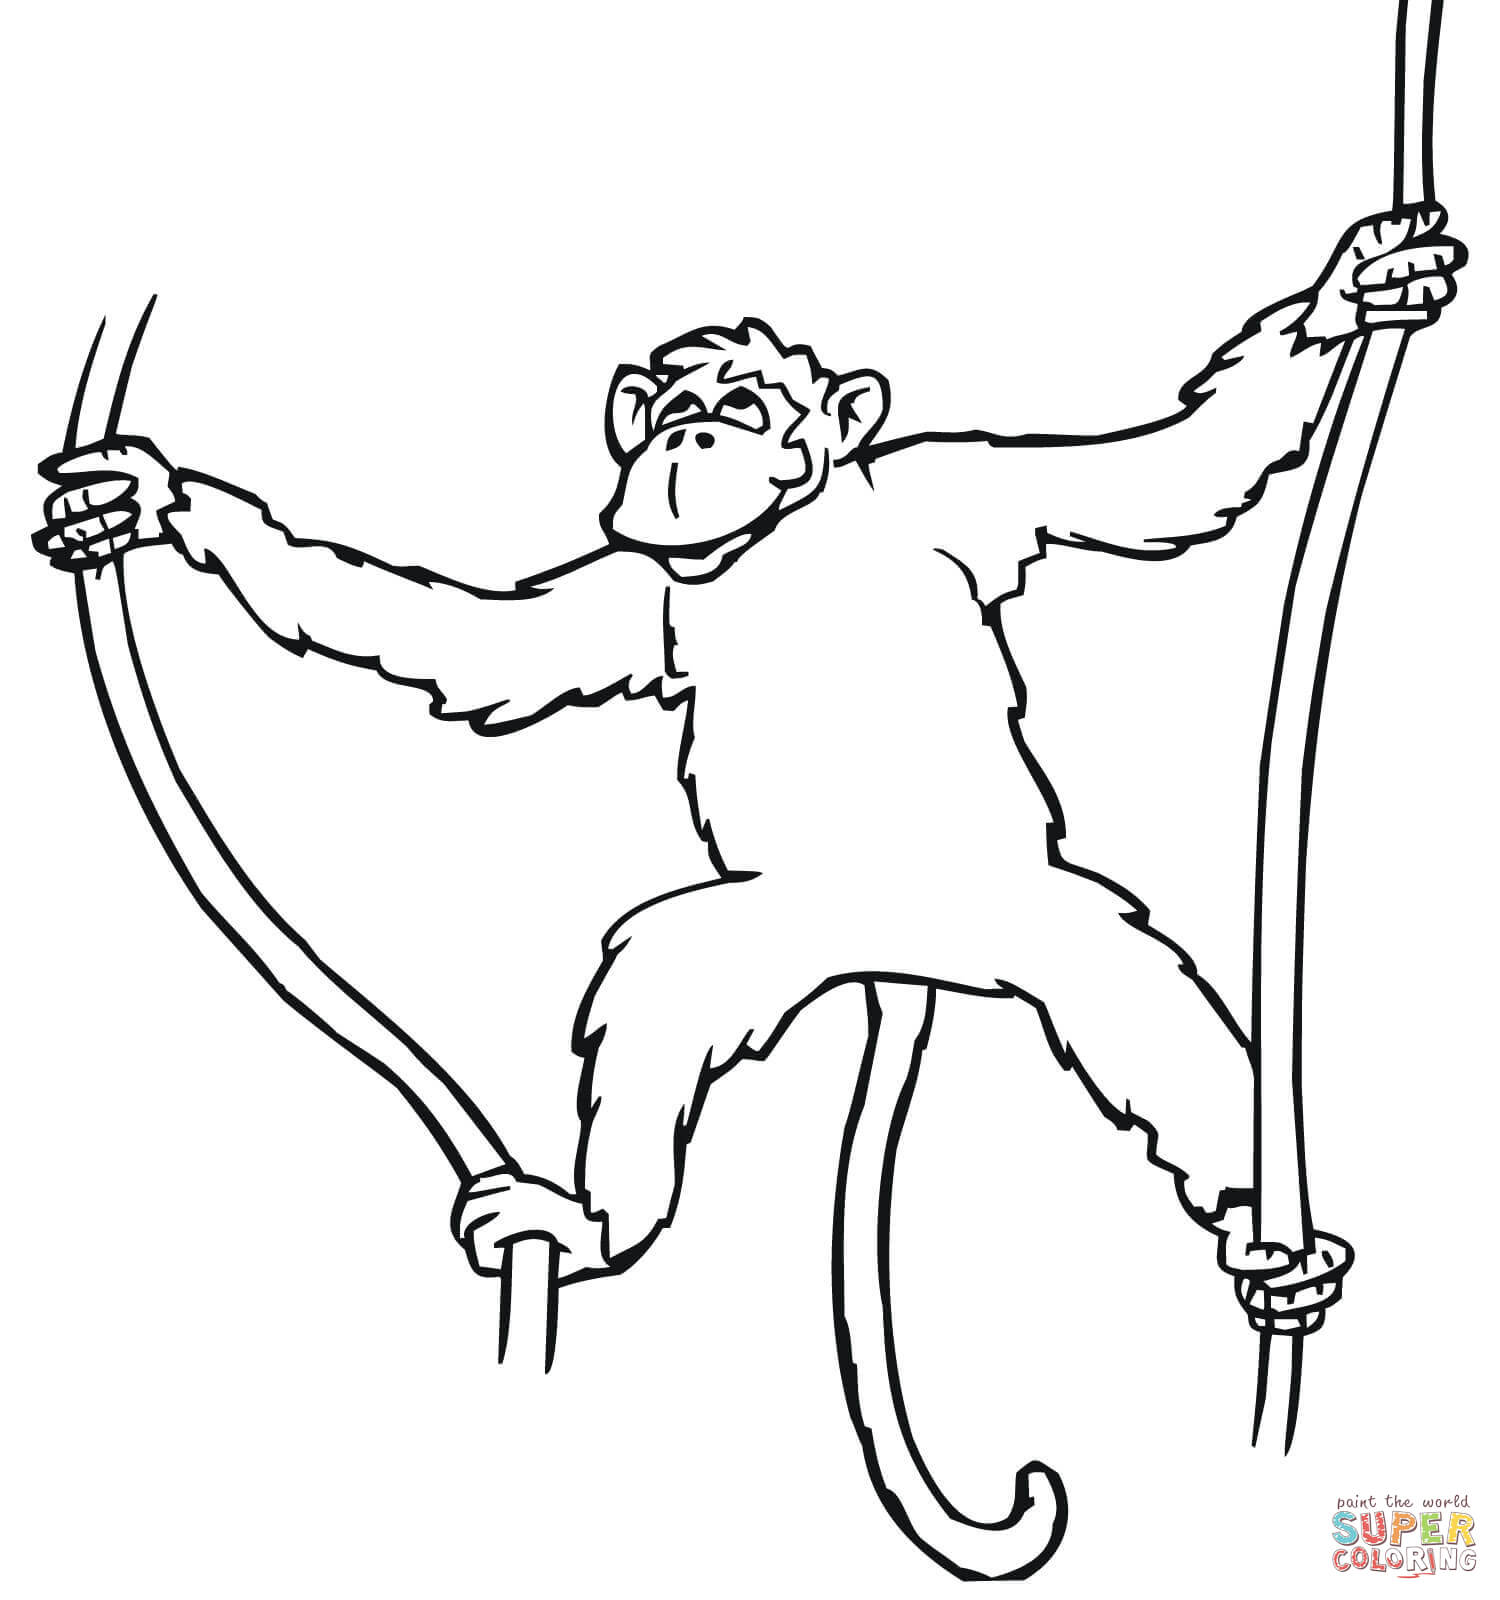 Swinging Monkey Drawing at GetDrawings